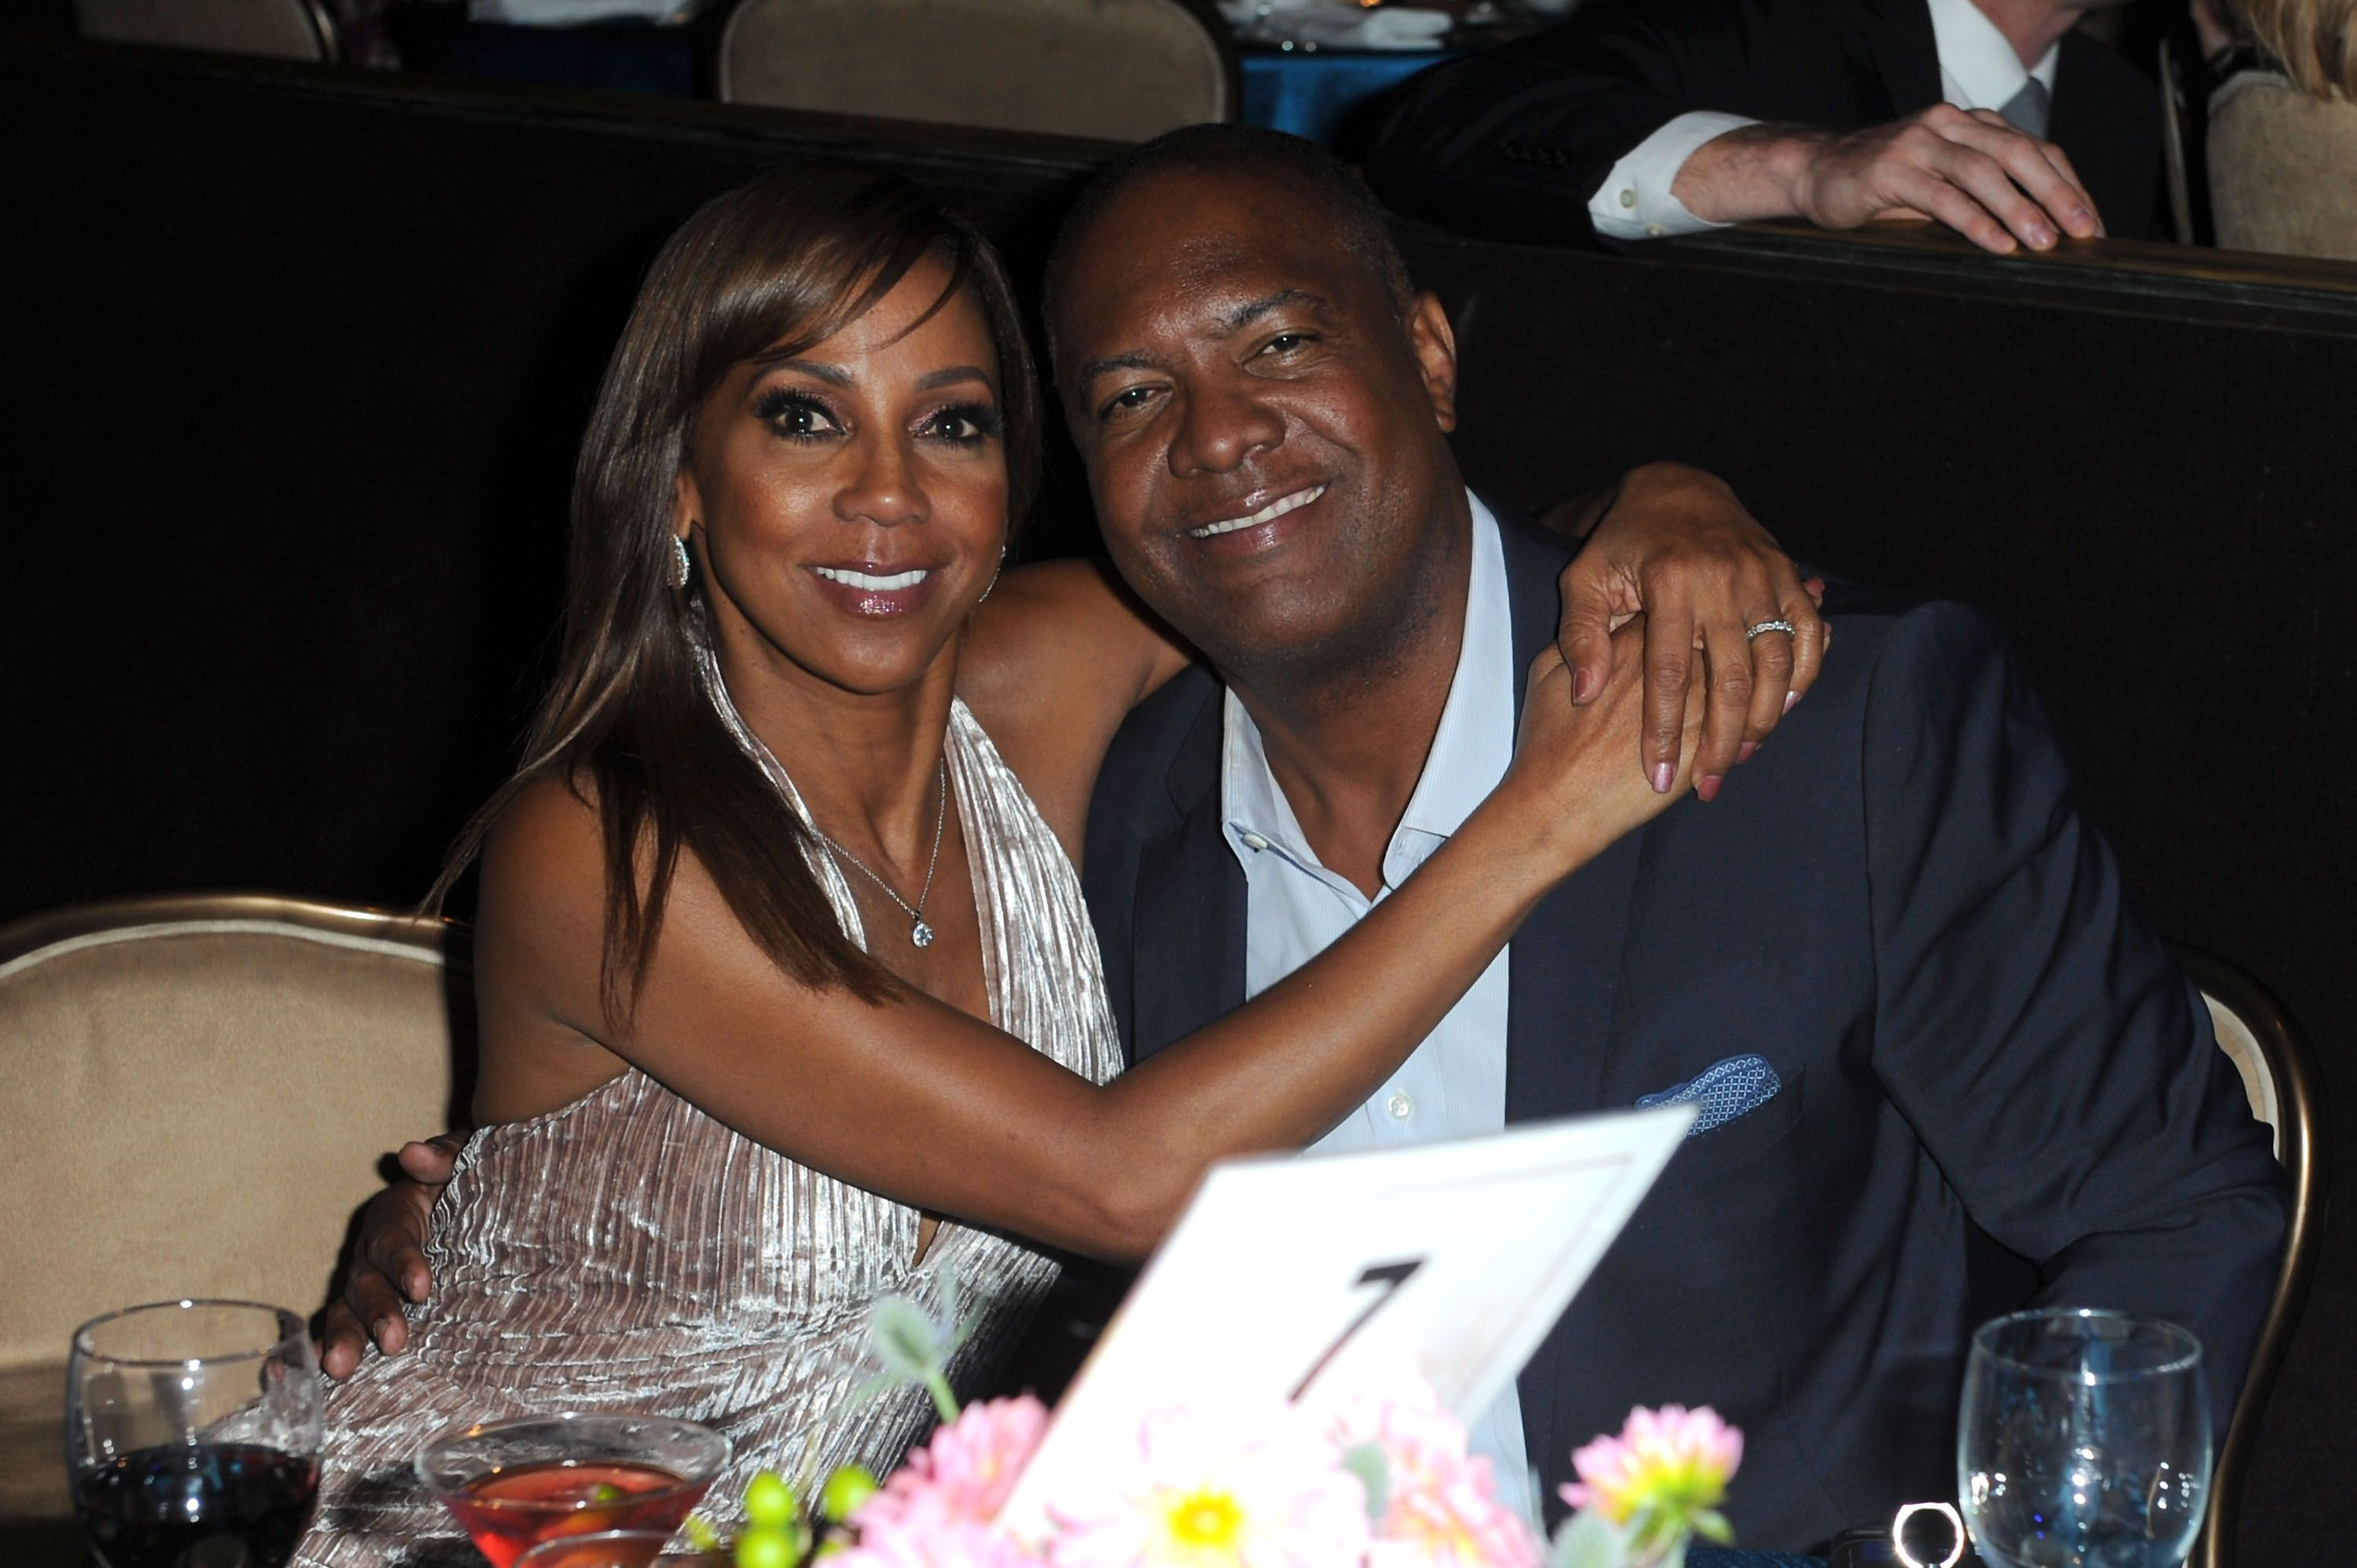 Holly Robinson Peete and Rodney Peete at the Habitat LA 2018 Los Angeles Builders Ball at The Beverly Hilton Hotel on September 27, 2018 | Photo: Getty Images